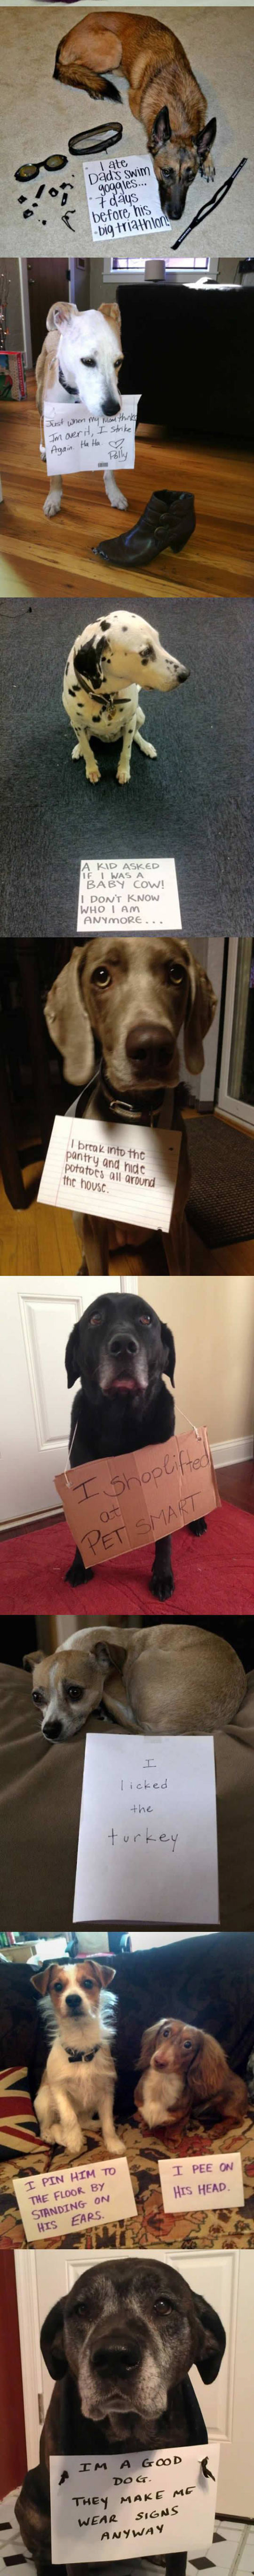 funny-note-shame-dogs-mess-confessions-shoes